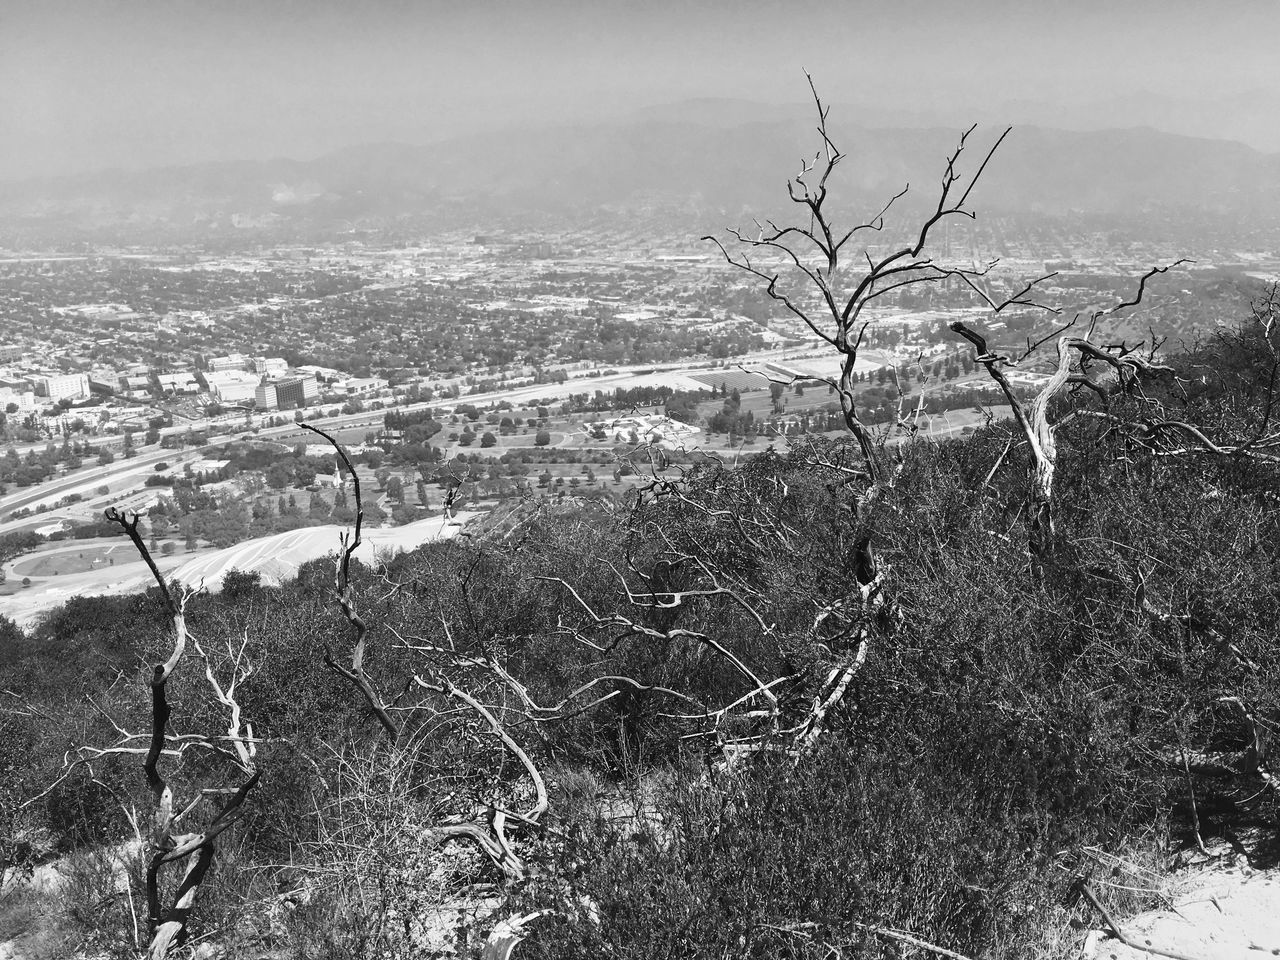 Hollywood Hills Beauty In Nature California Cloud - Sky Day Film Noir Growth Hiking Hollywood Hills Landscape Los Ángeles Monochrome Nature No People Outdoors Sky Tree